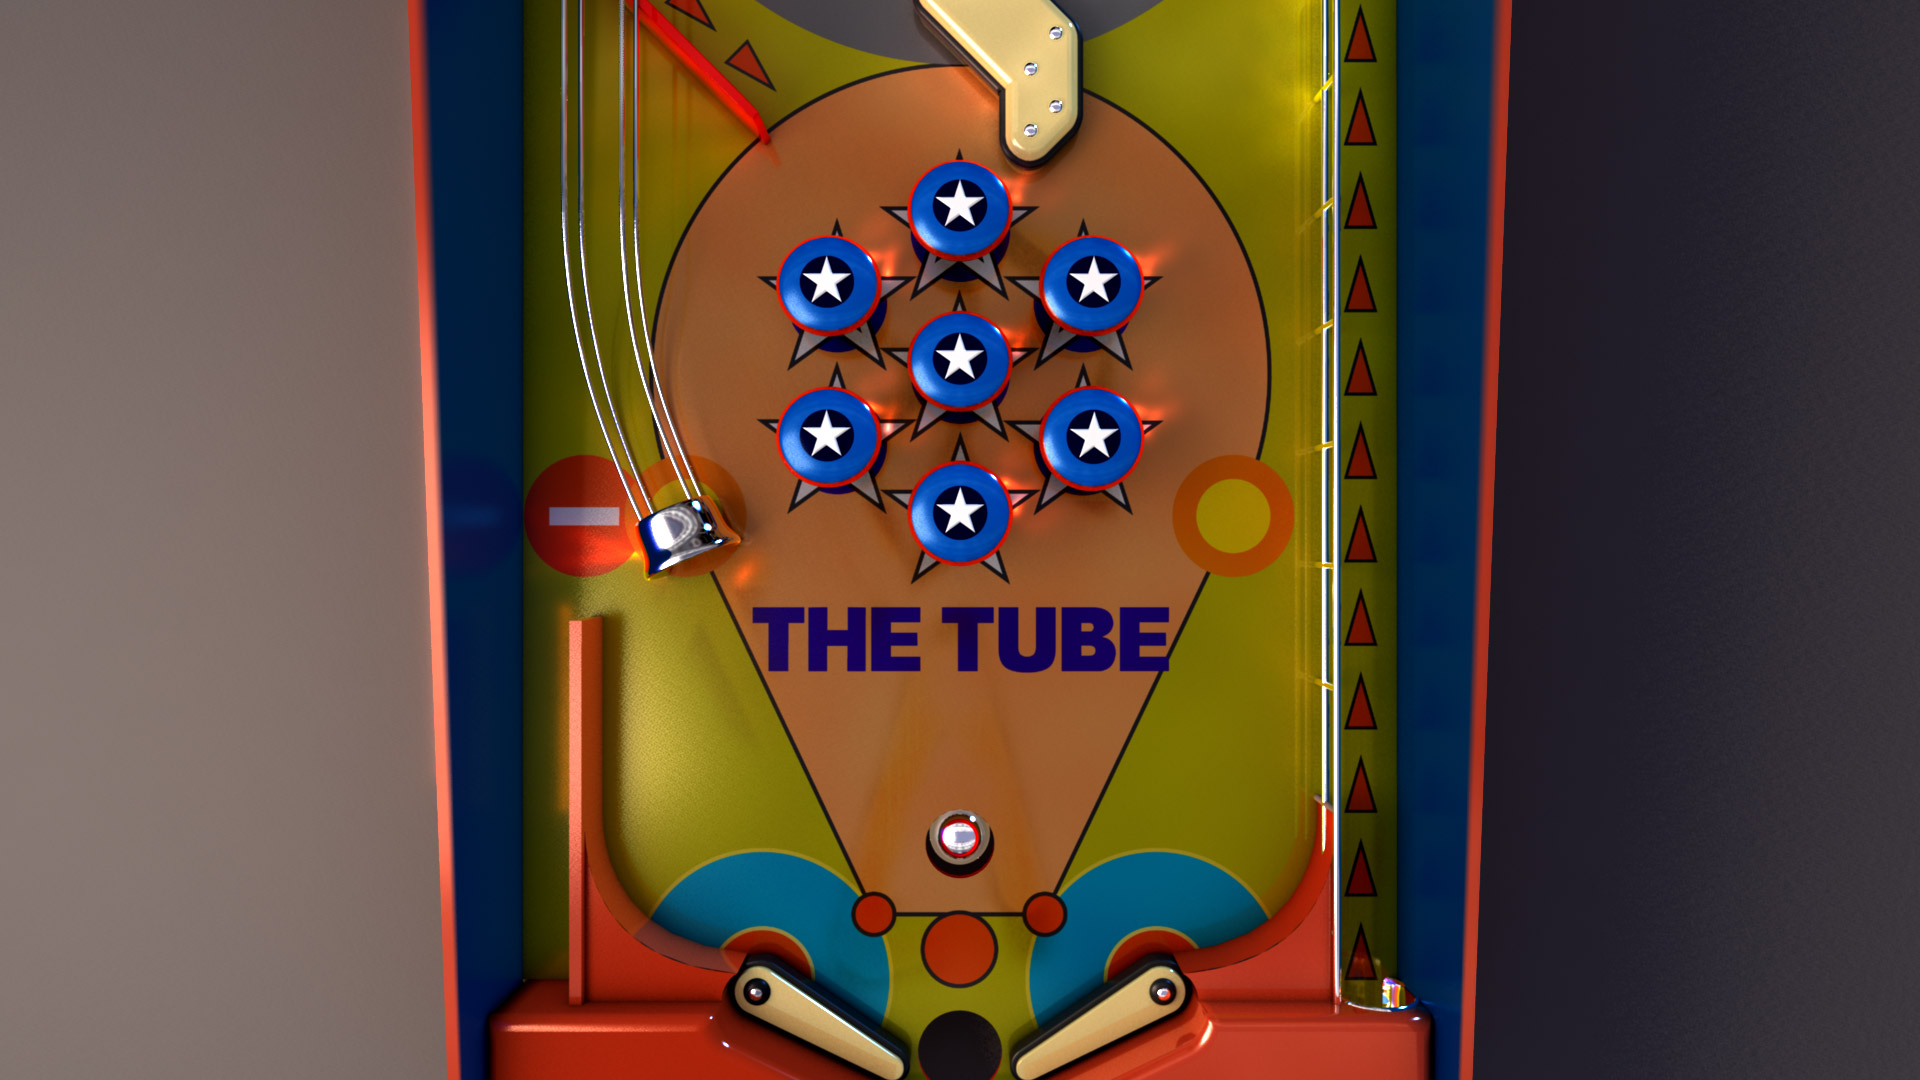 The Tube Music Network Pinball Animated Video